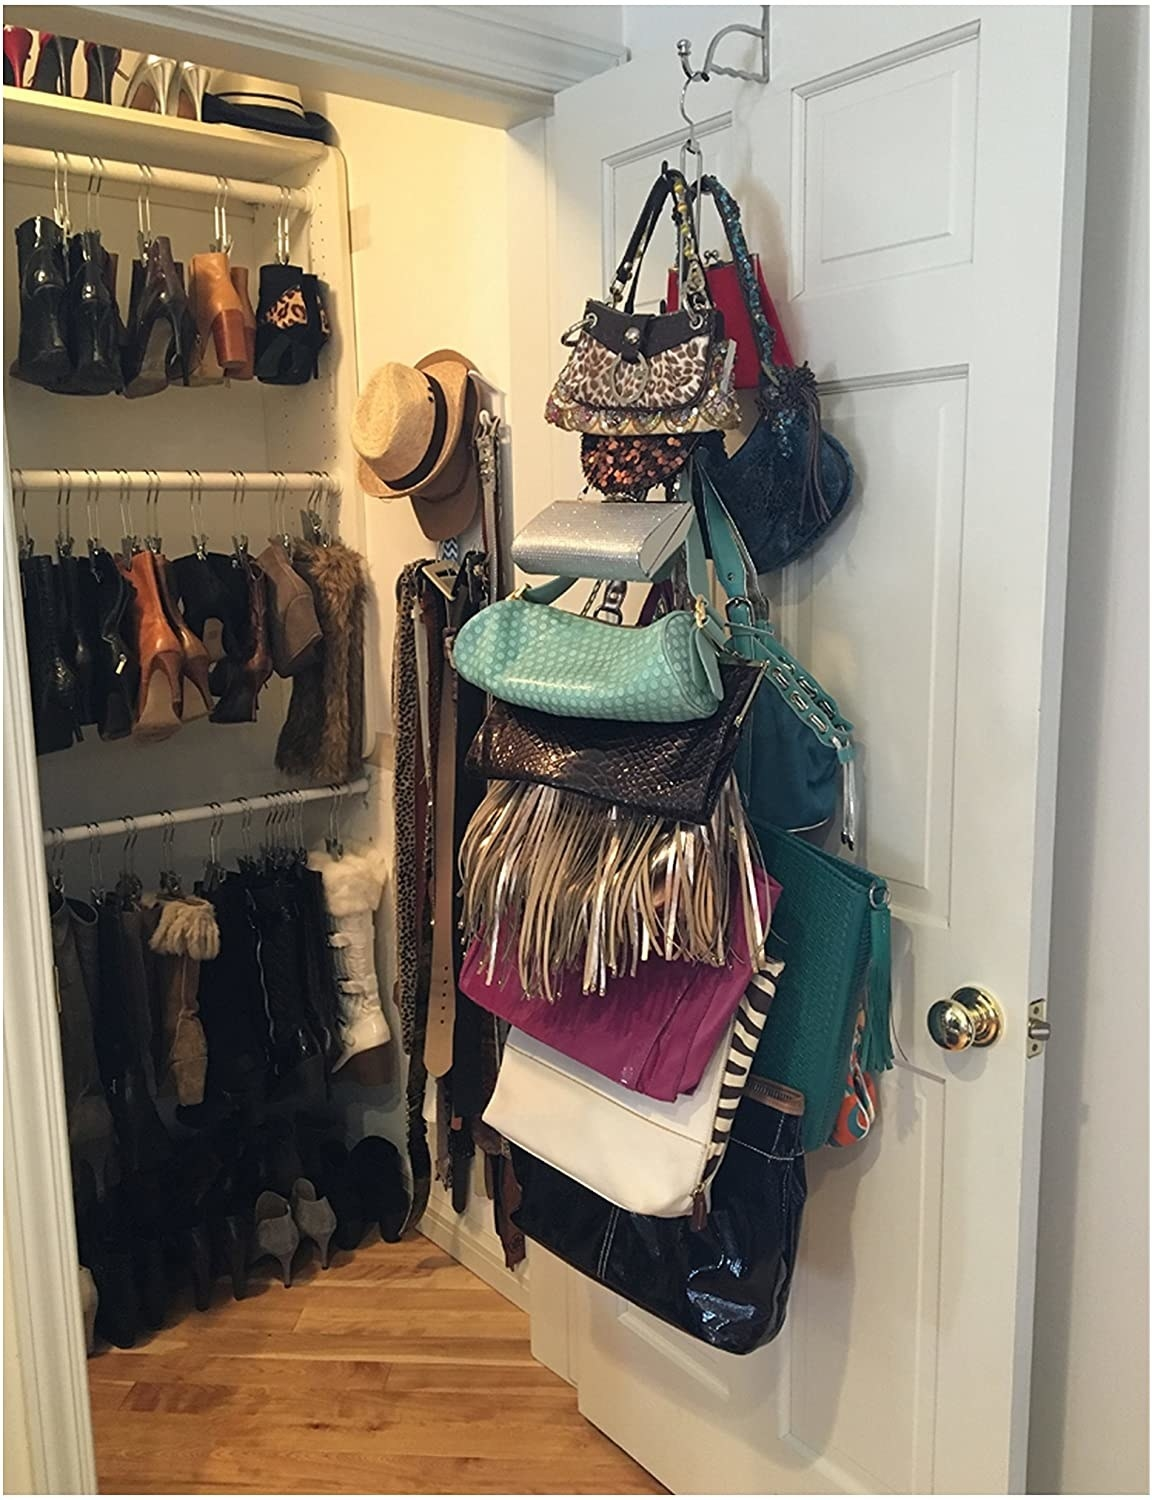 the hanger holding around 15 purses from the back of a closet door